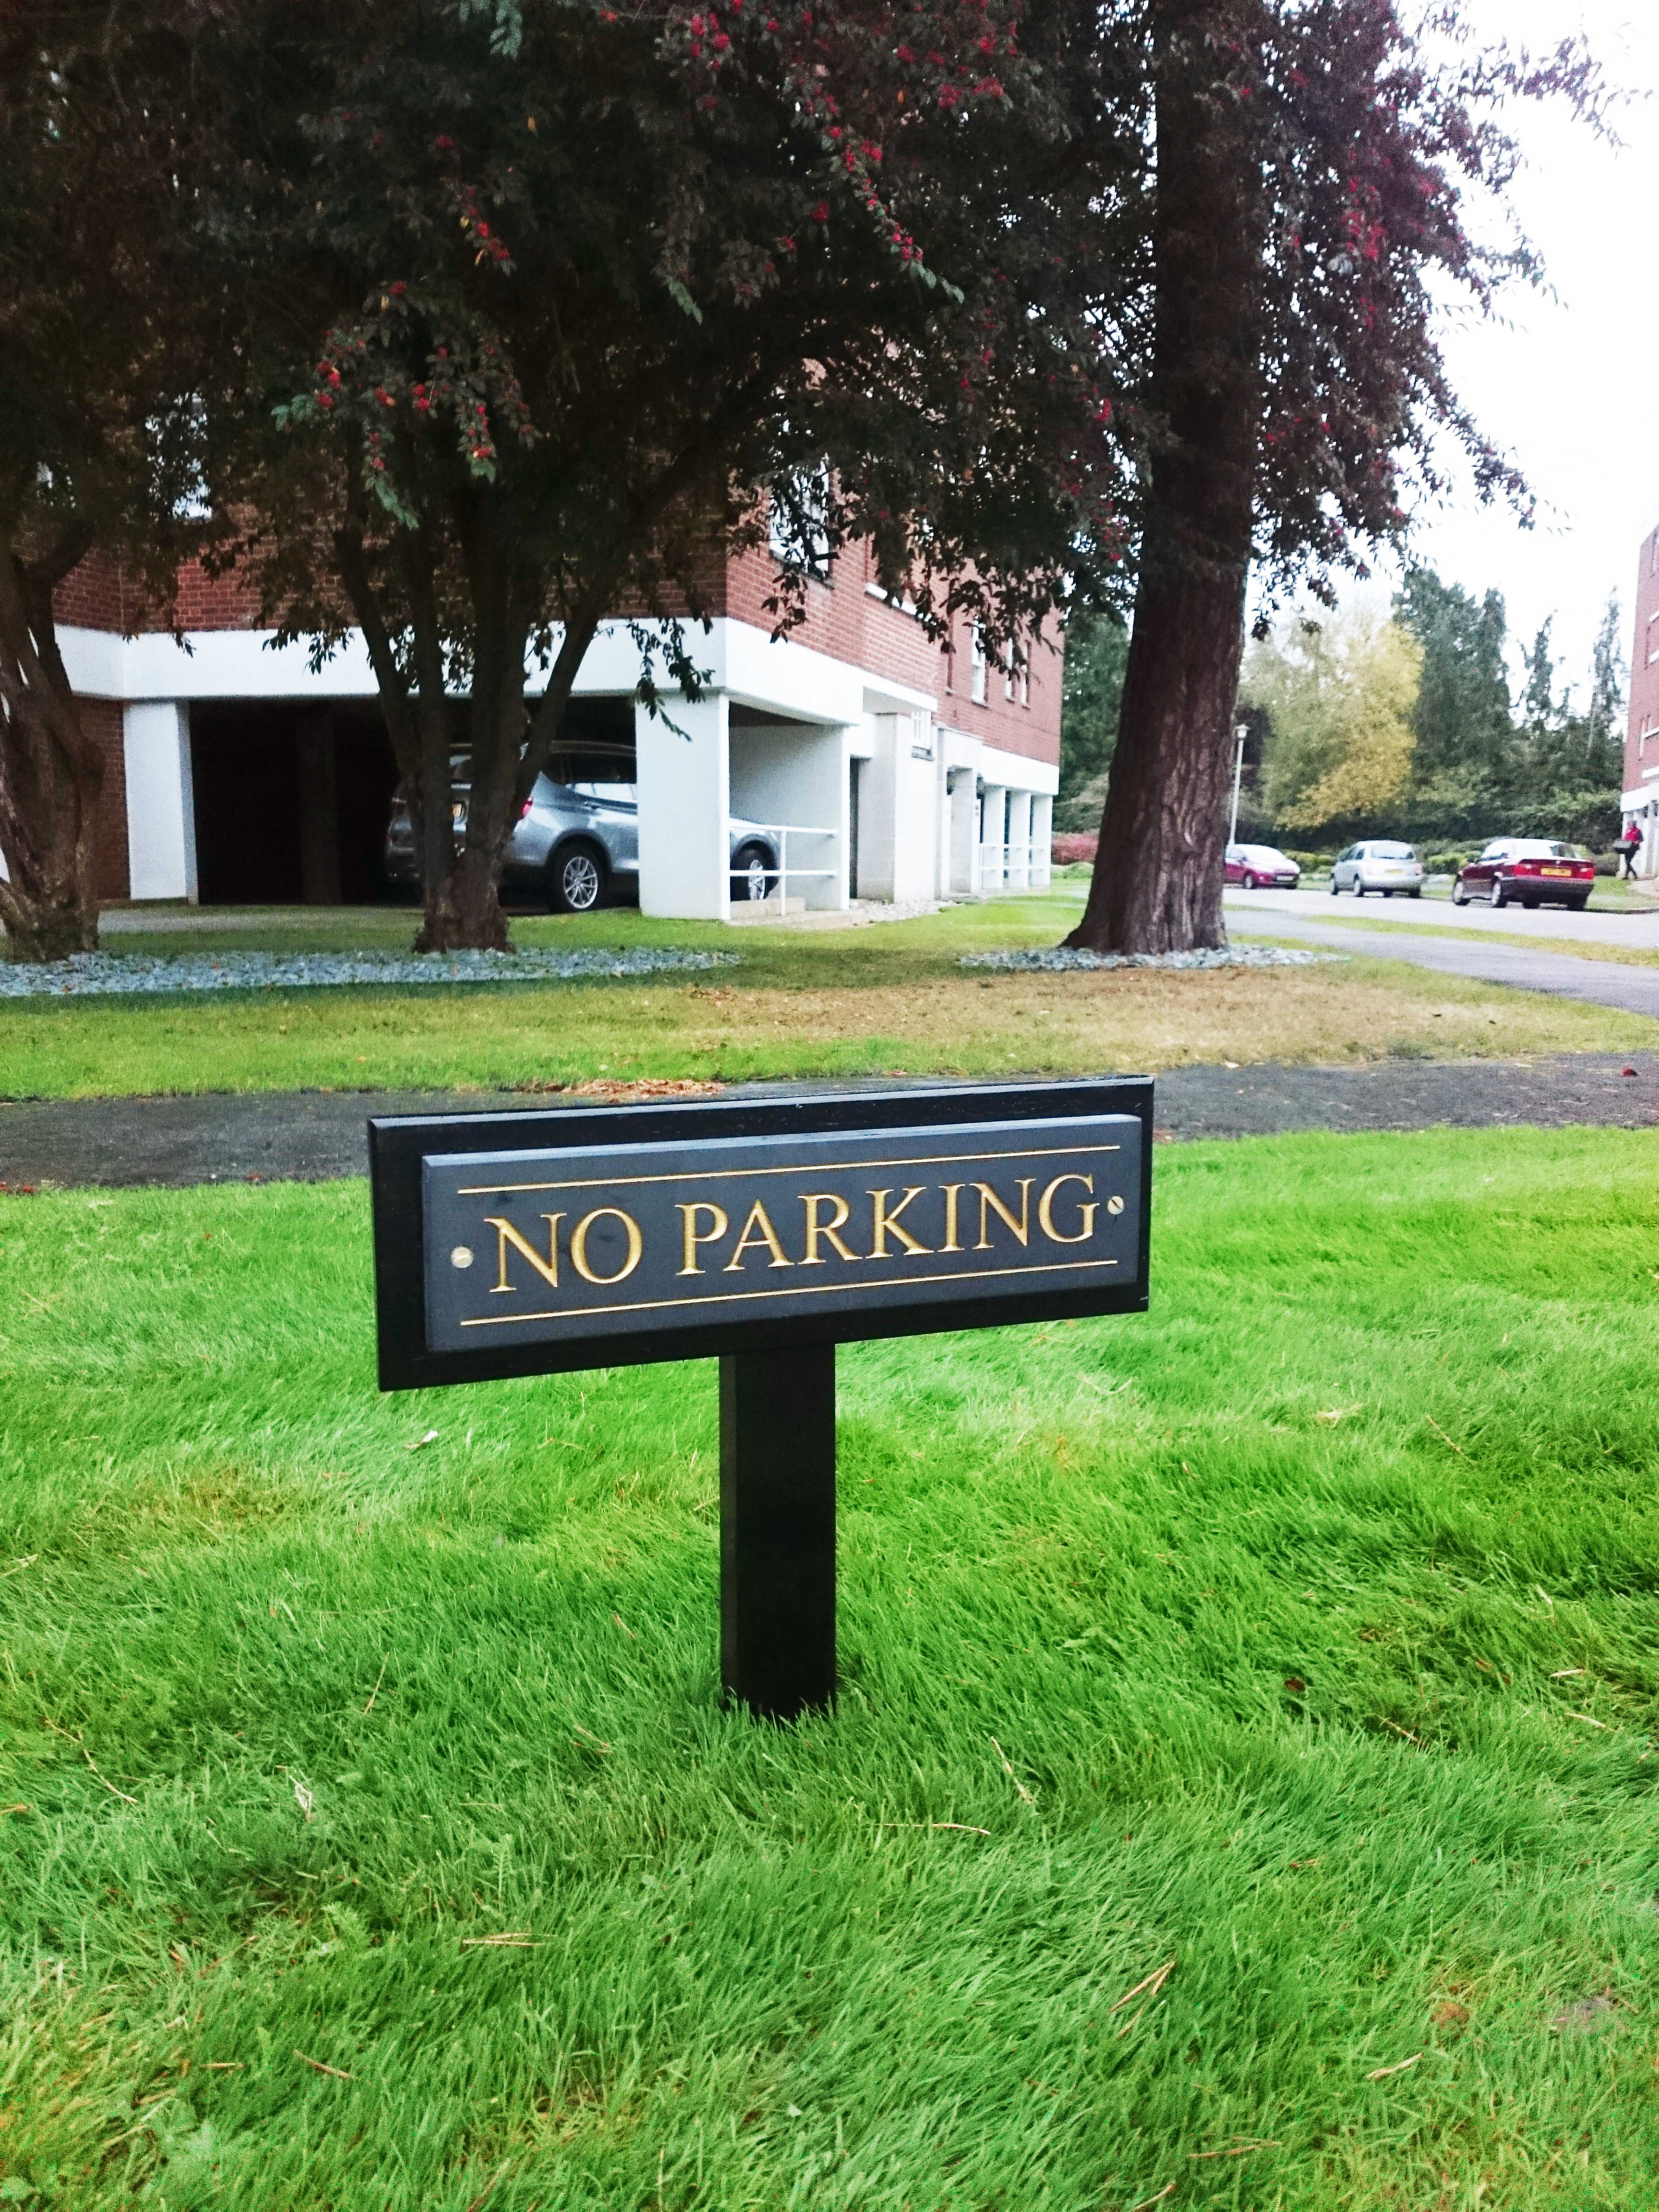 No parking sign - Stanmore